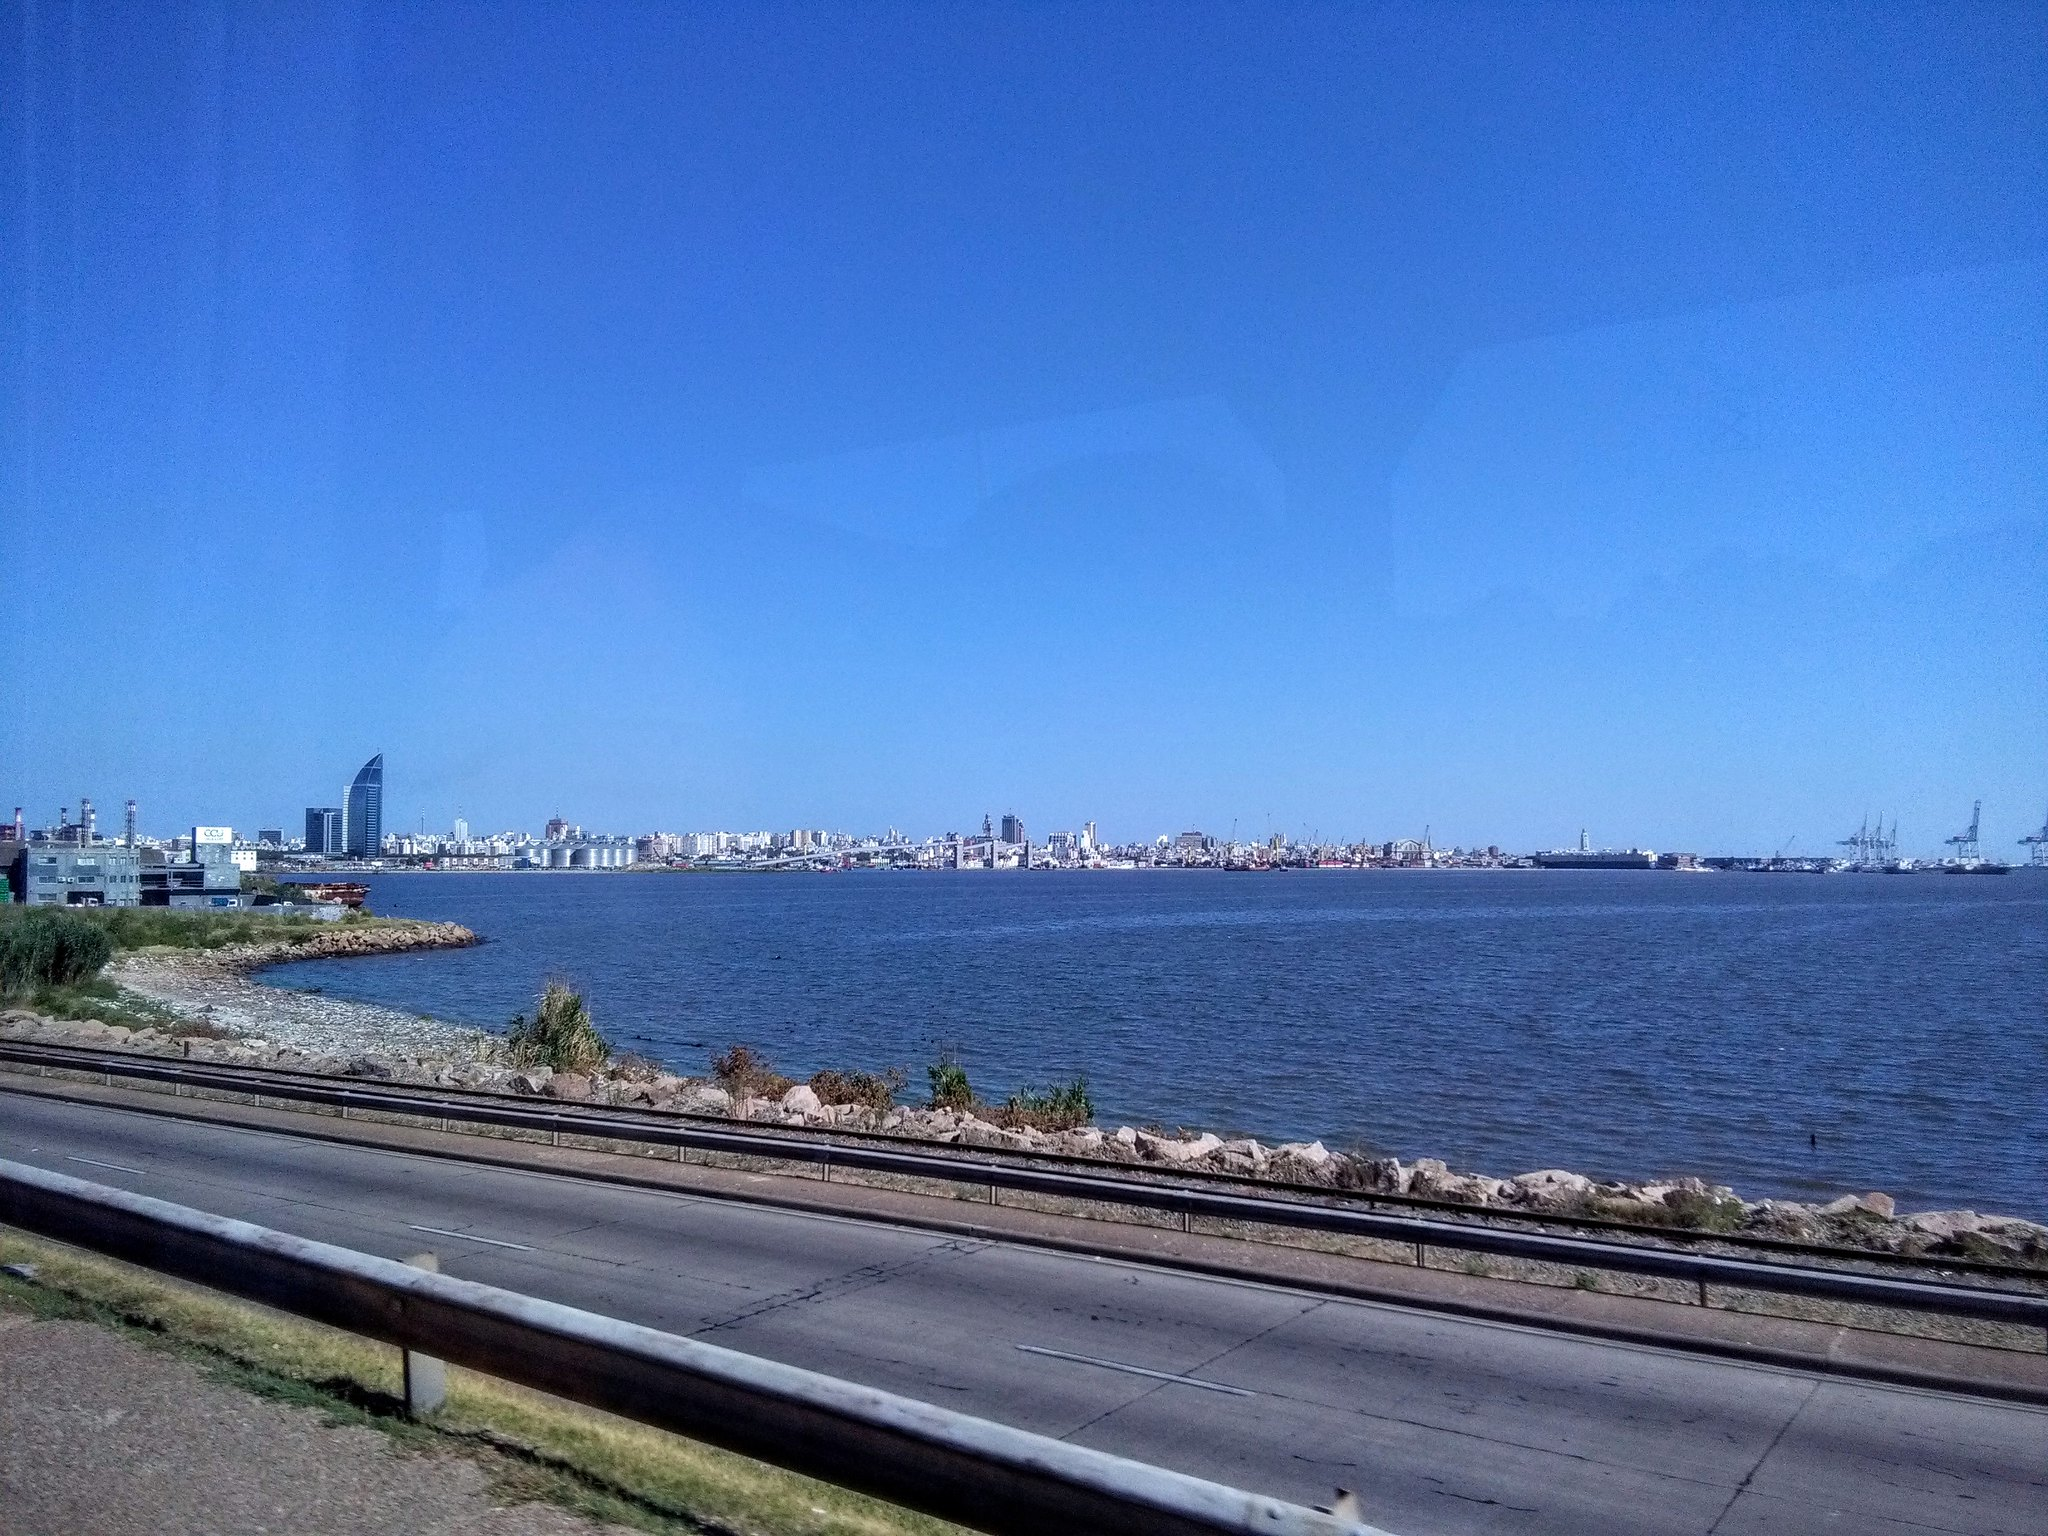 View from the bus as we pull in to Montevideo